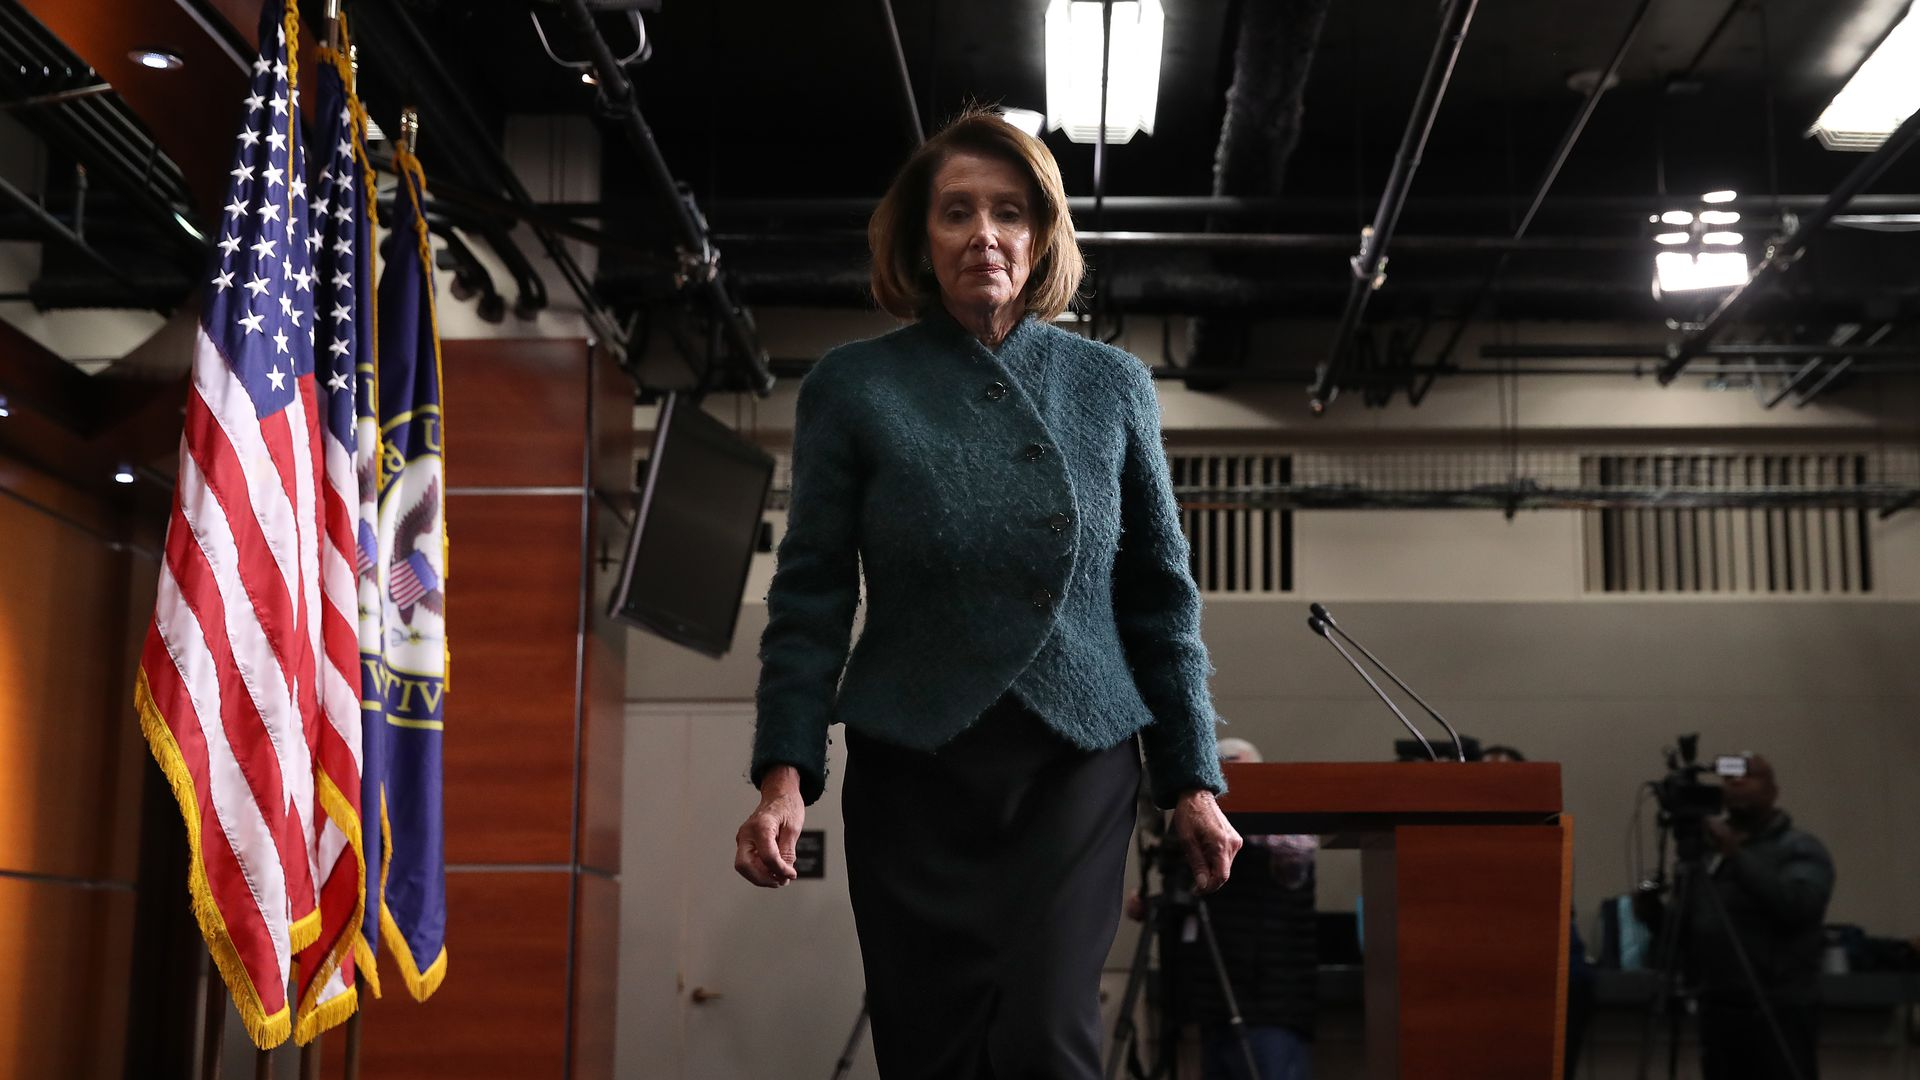 Nancy Pelosi postpones overseas trip to war zone after details leaked by Trump administration